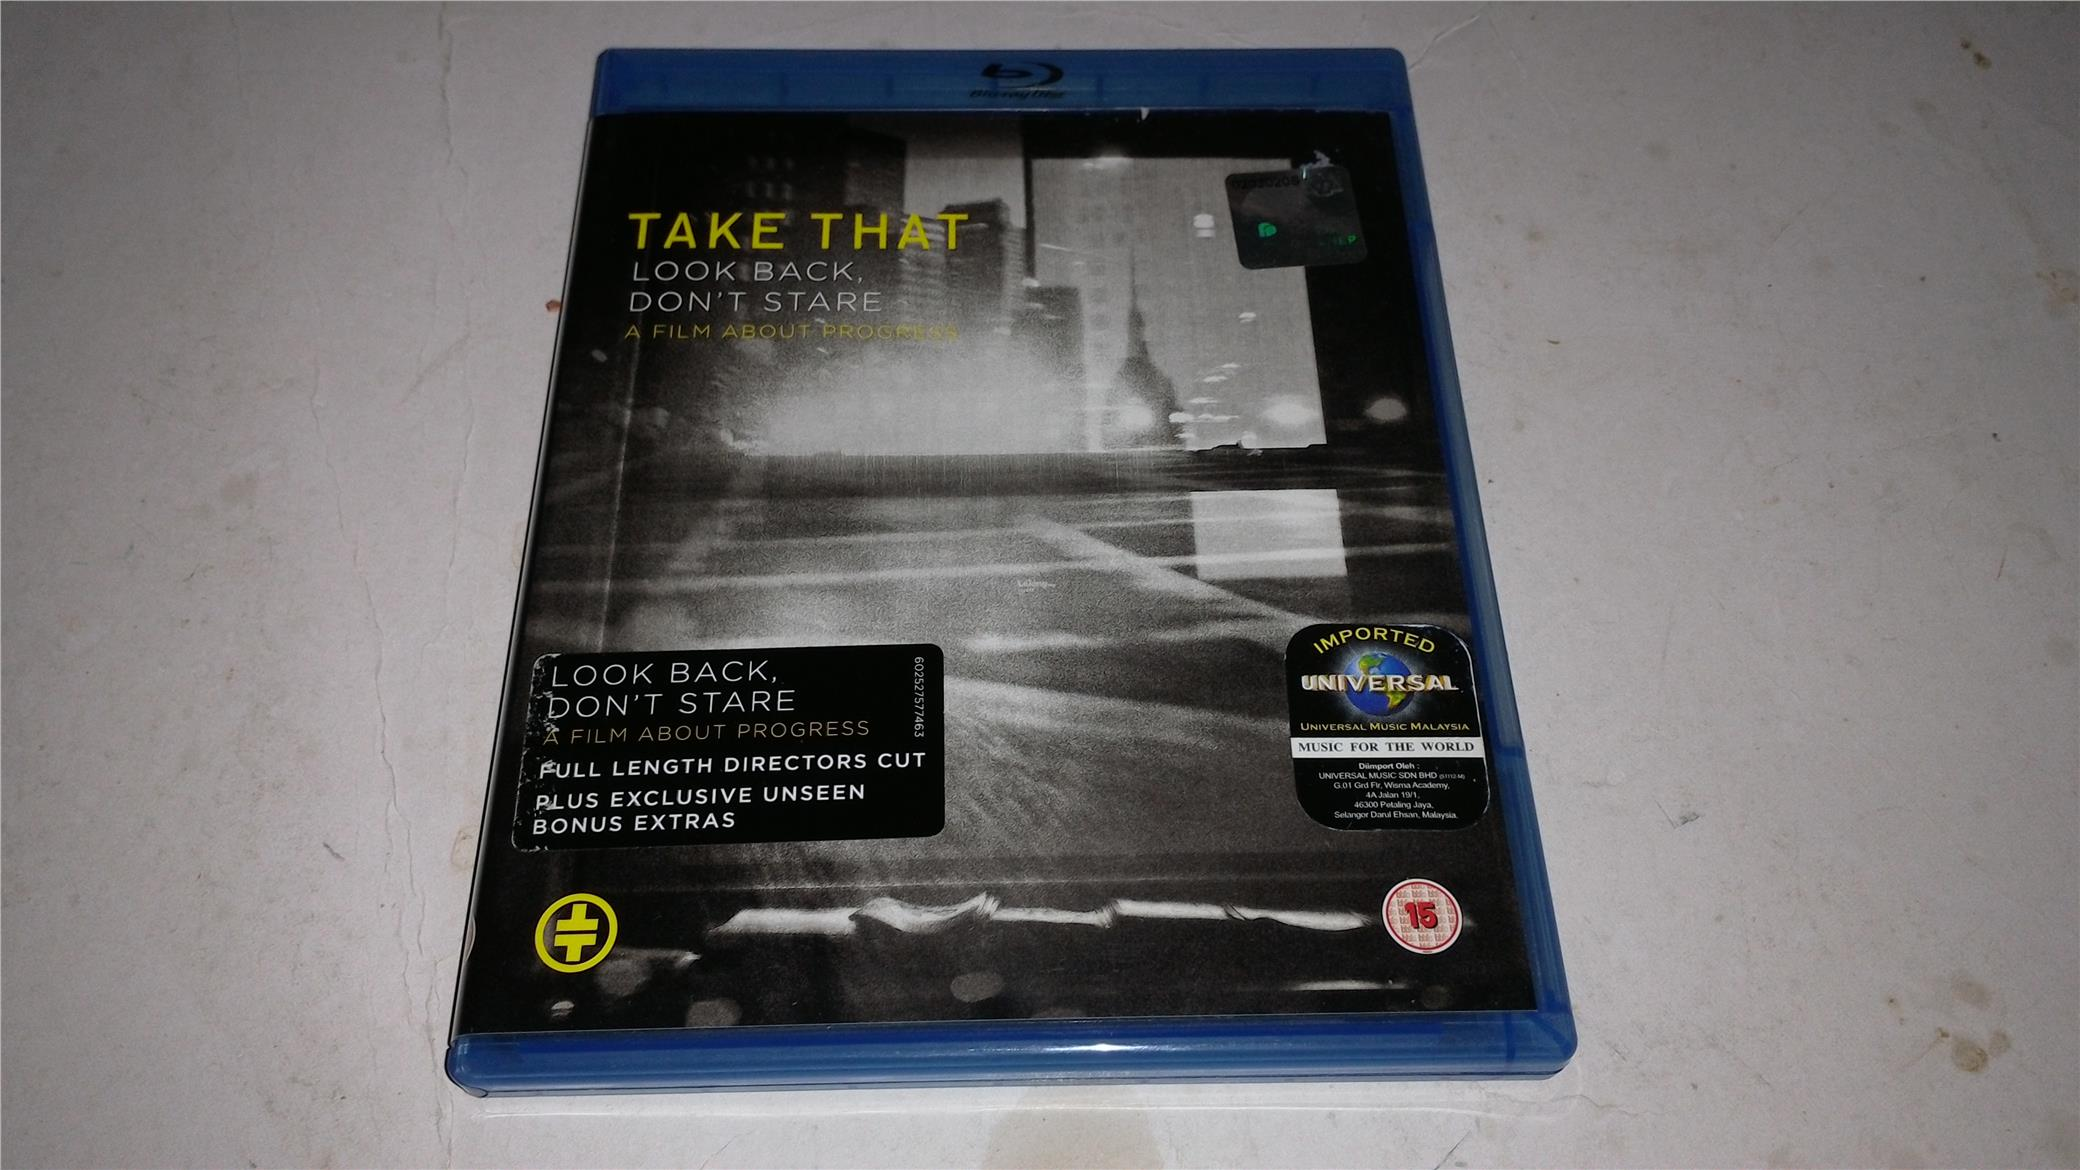 TAKE THAT - LOOK BACK DON'T STARE BLU RAY DVD